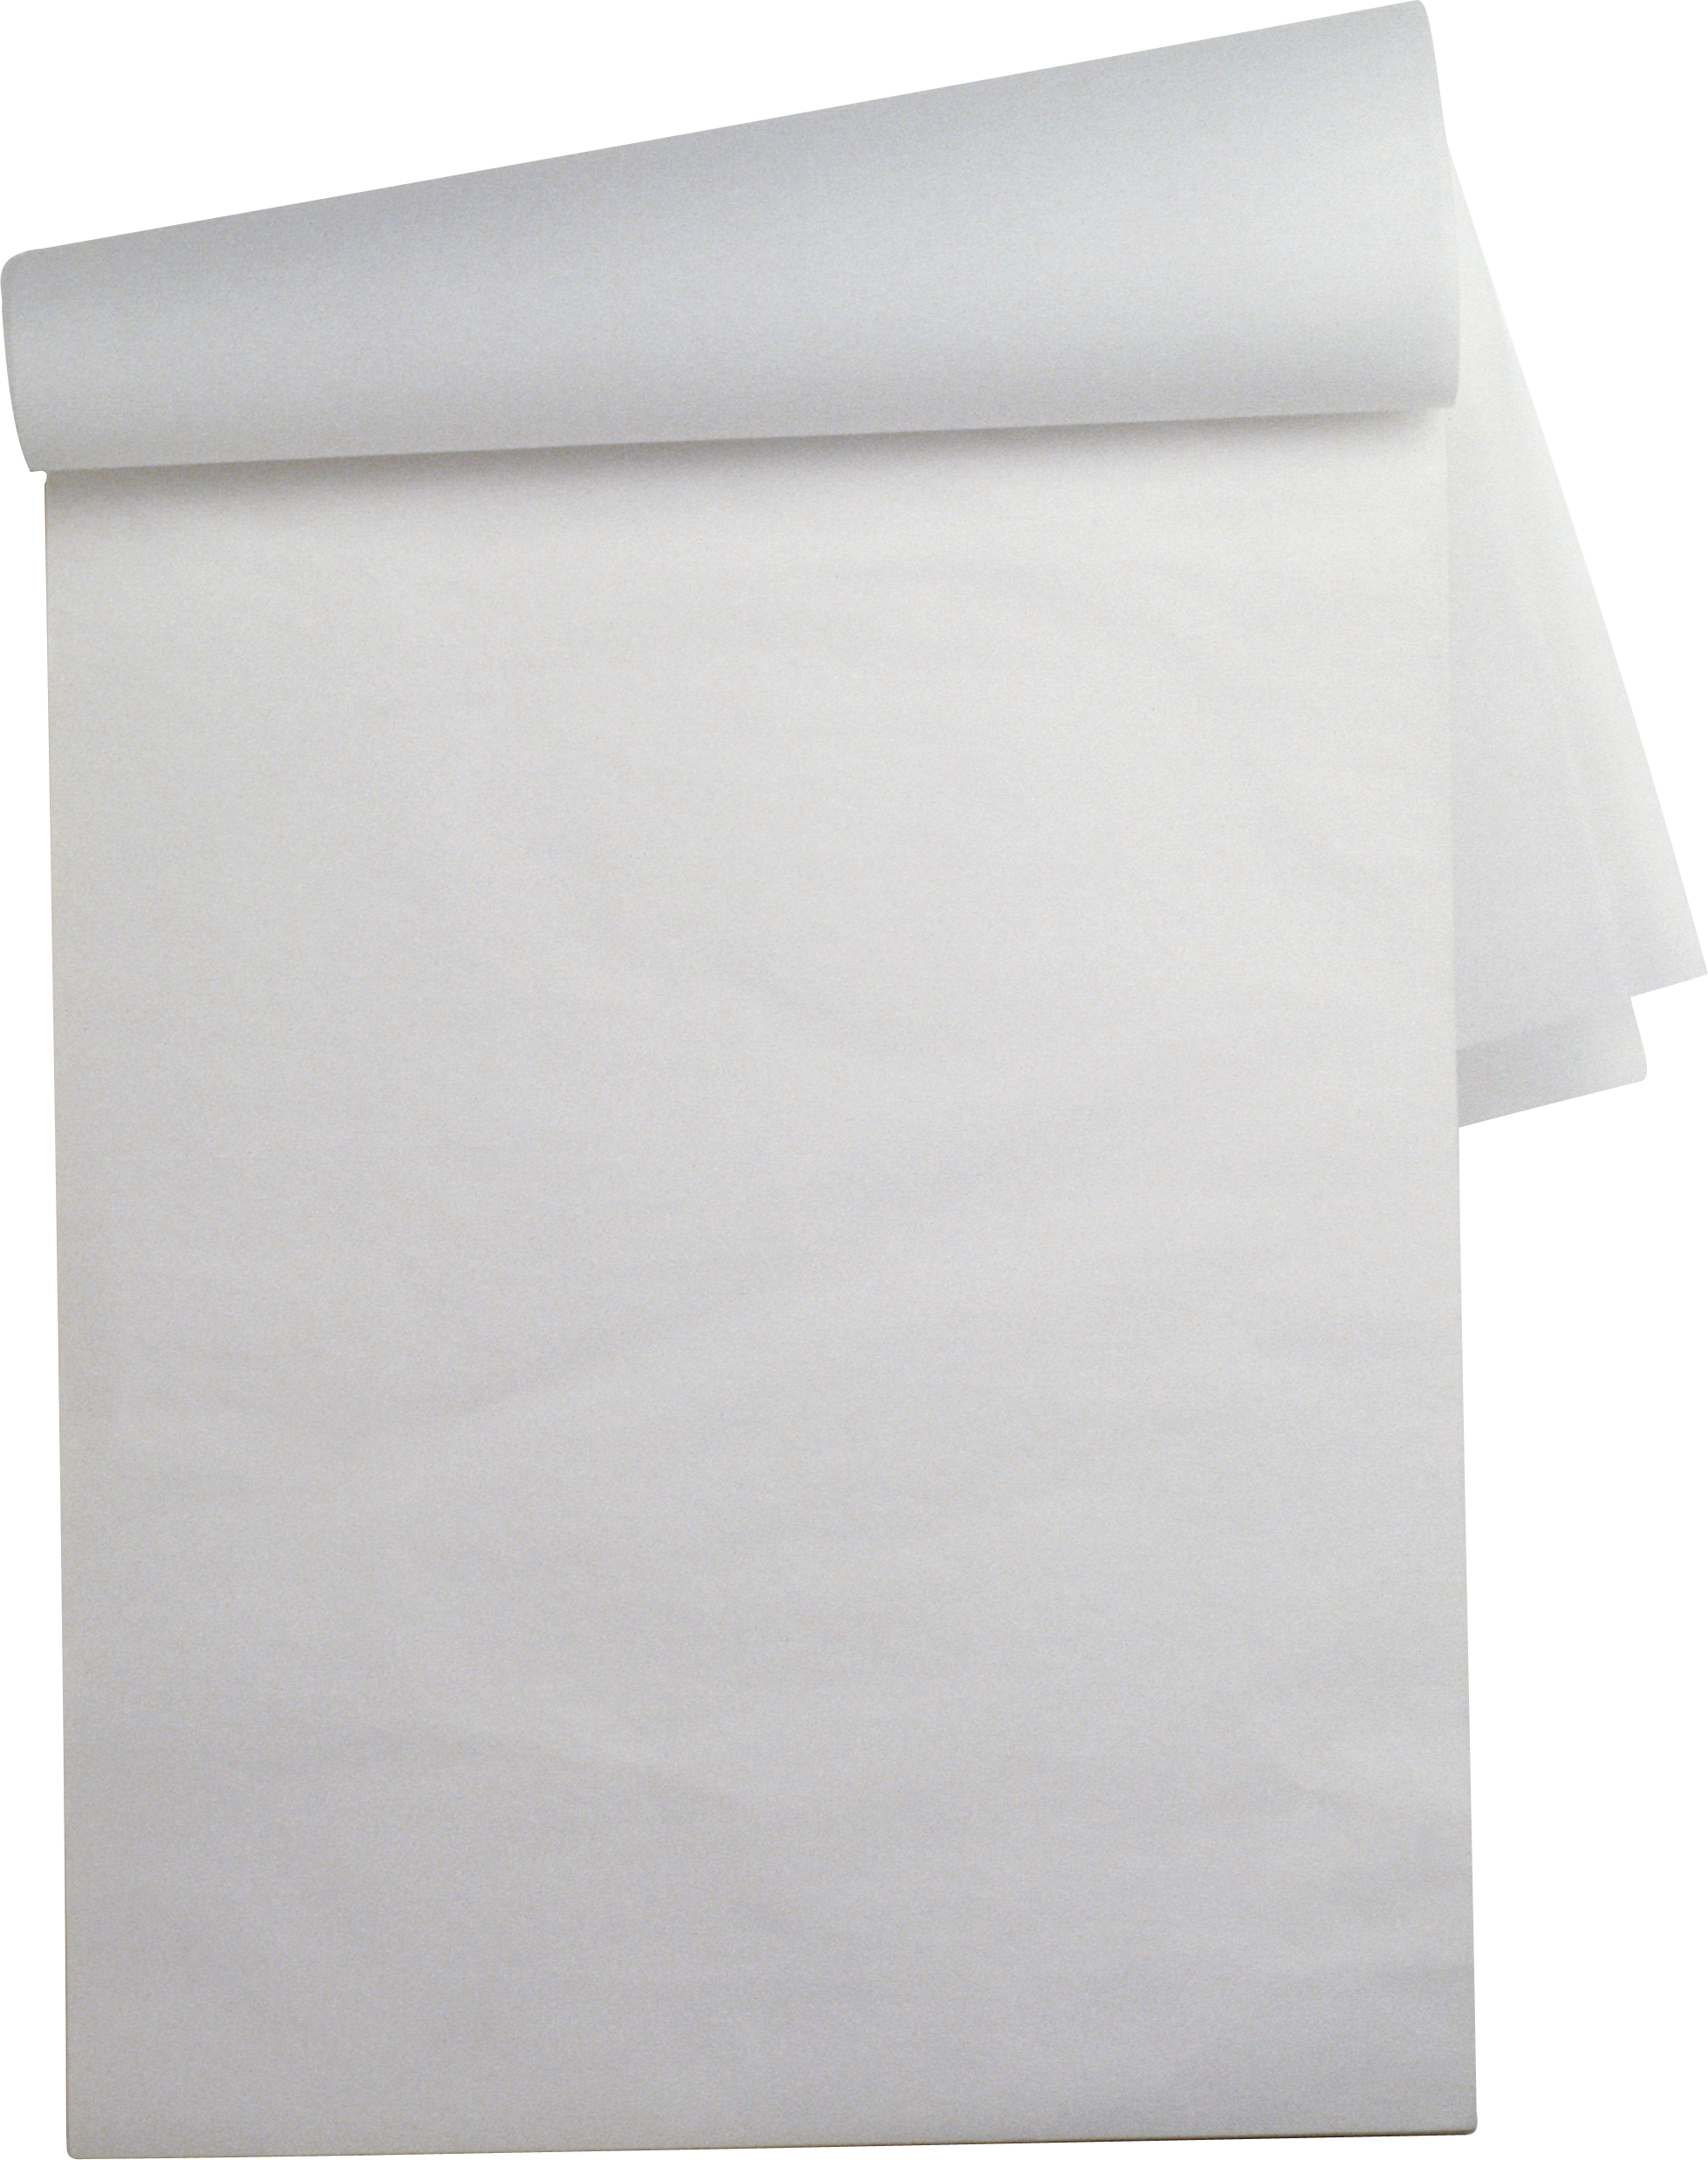 paper sheet png transparent paper sheet png images pluspng